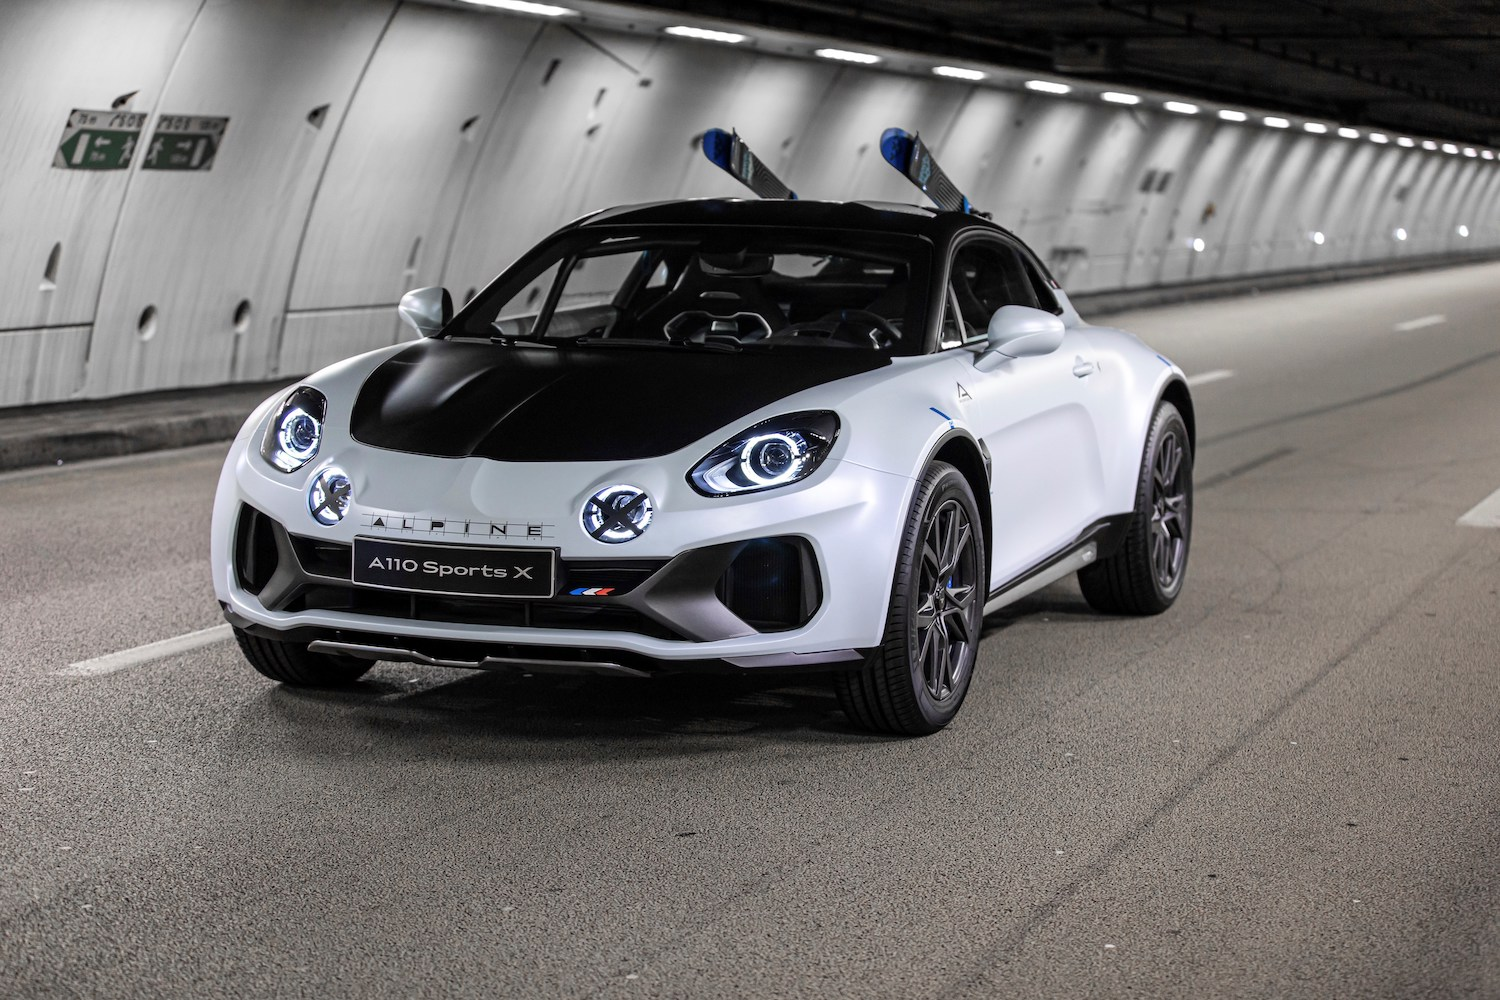 Alpine A110 SportsX front three-quarter